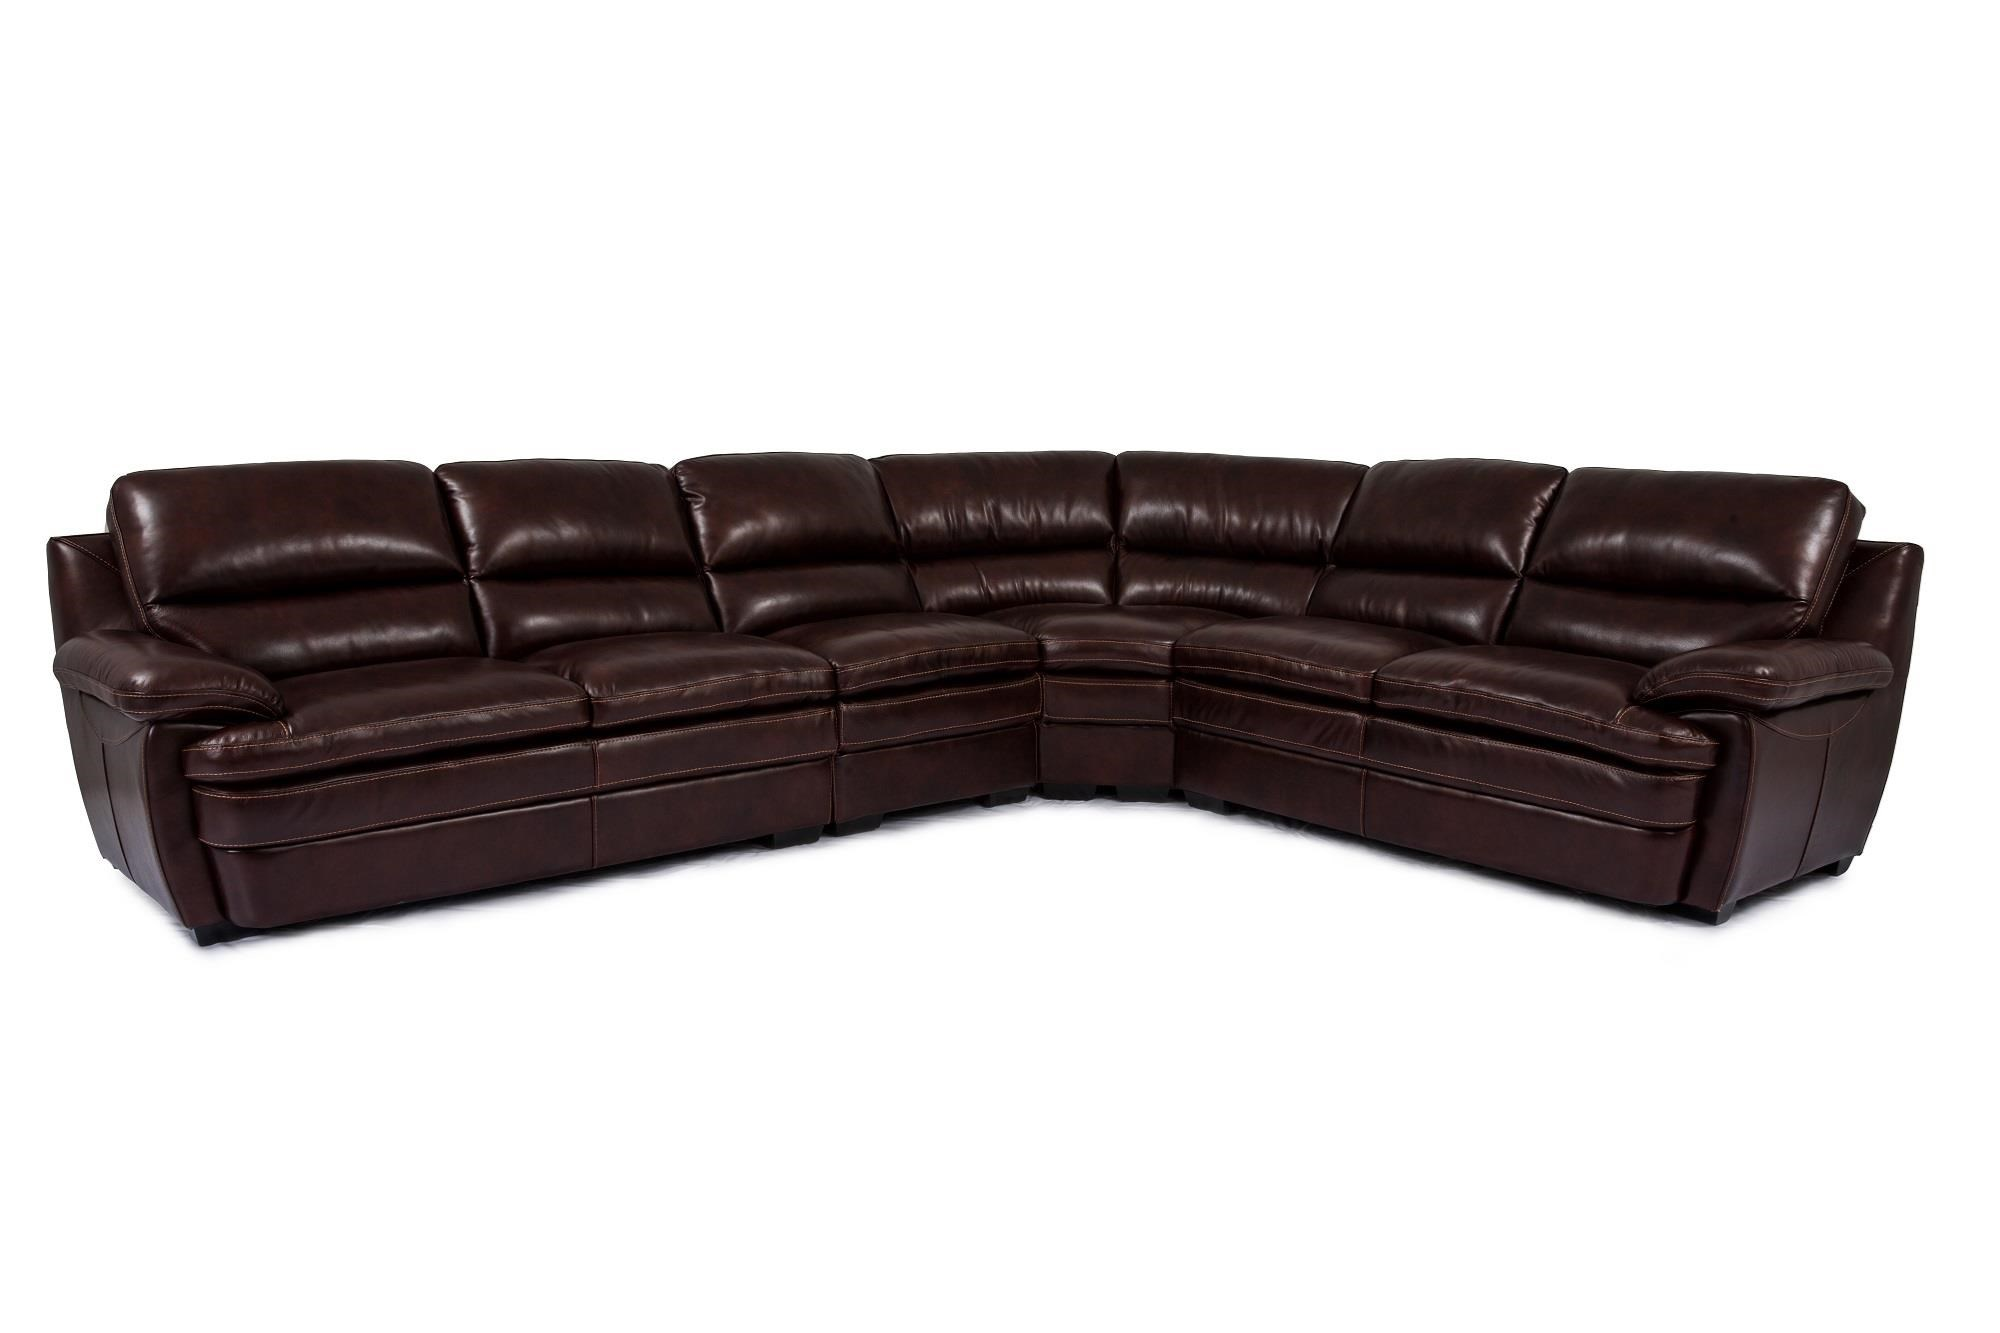 Cheers Sofa Trent Leather 3 Piece Sectional - Great American Home Store - Sectional Modular Components  sc 1 st  Great American Home Store : cheers sectional sofa - Sectionals, Sofas & Couches